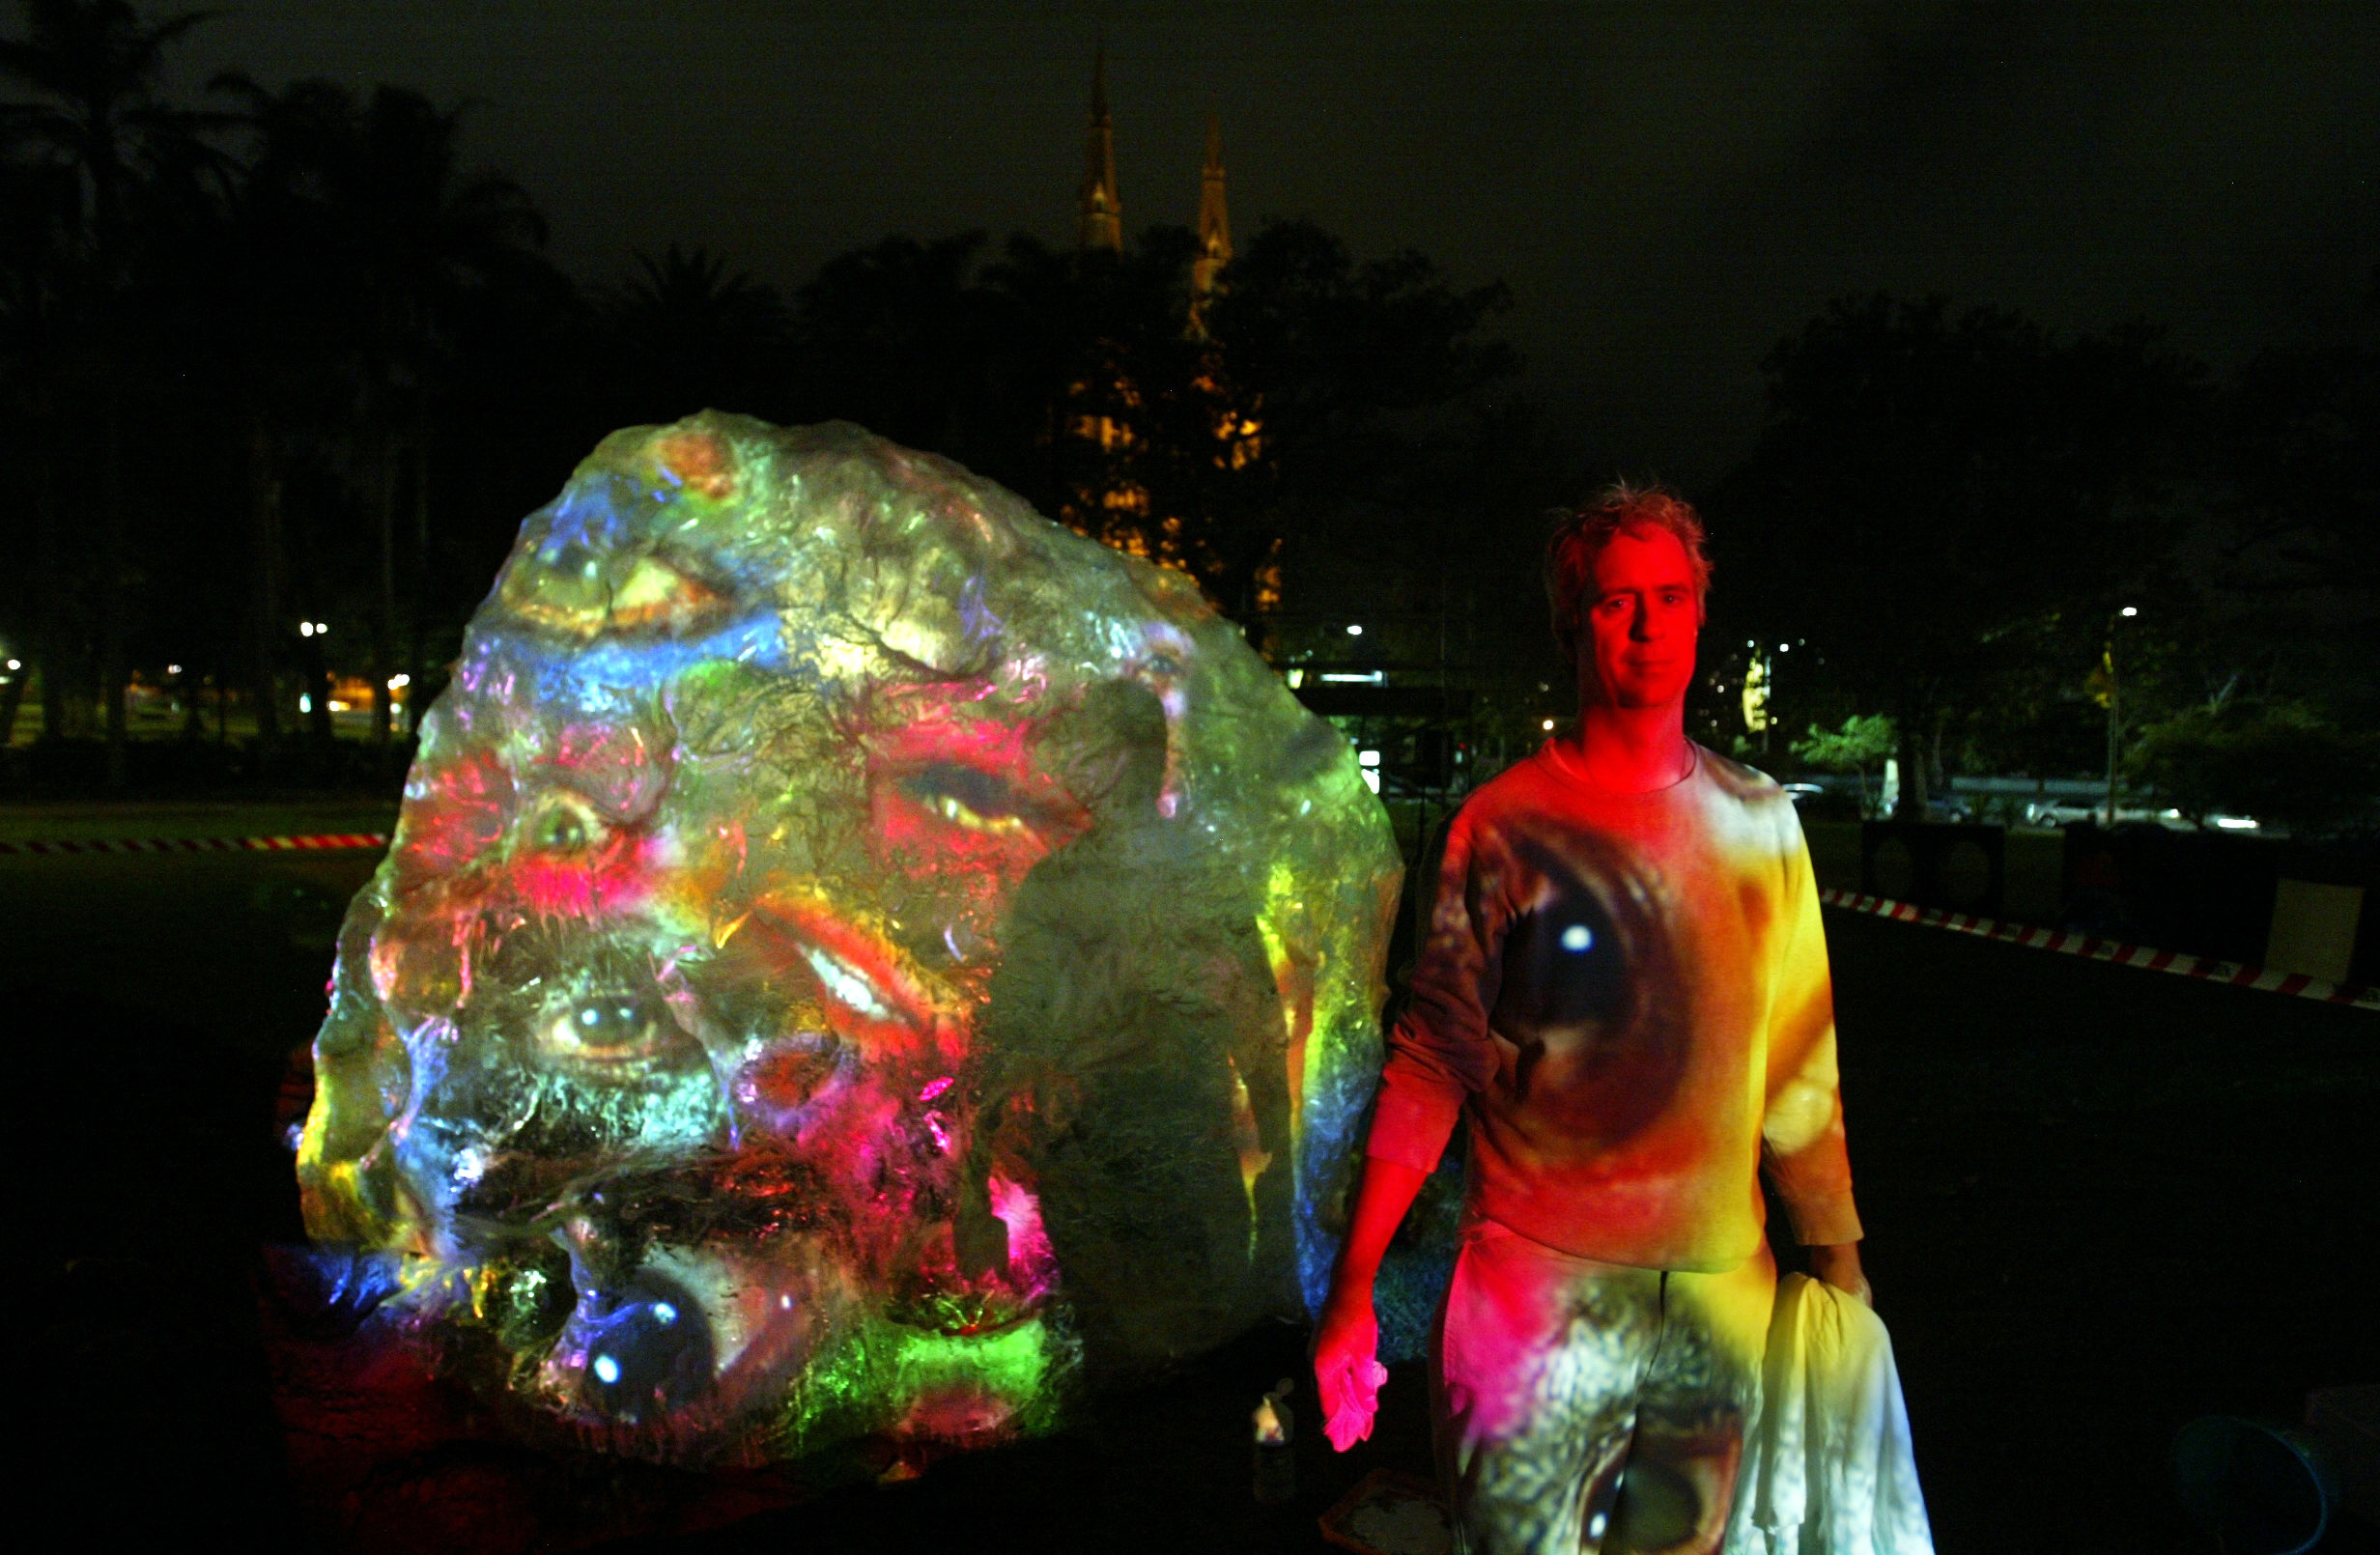 Tony Oursler in front of his installation Blue Invasion in Sydney